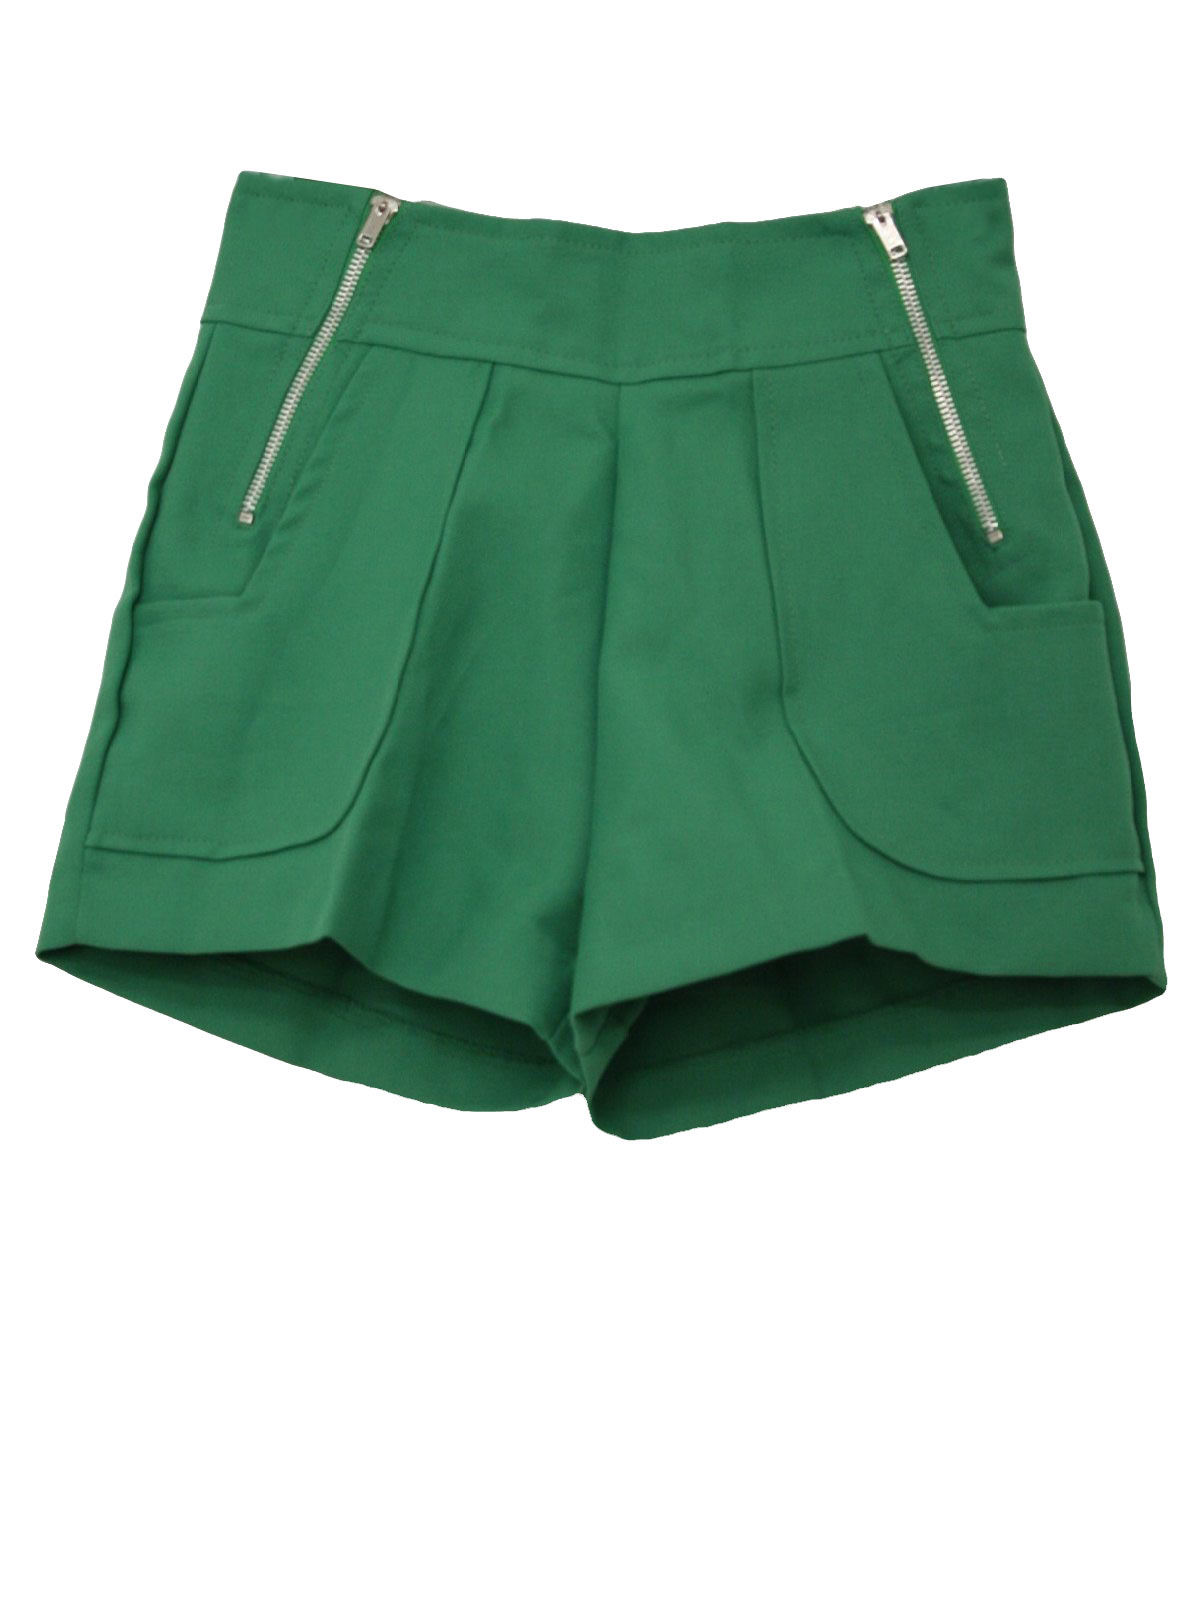 green short pants - Pi Pants